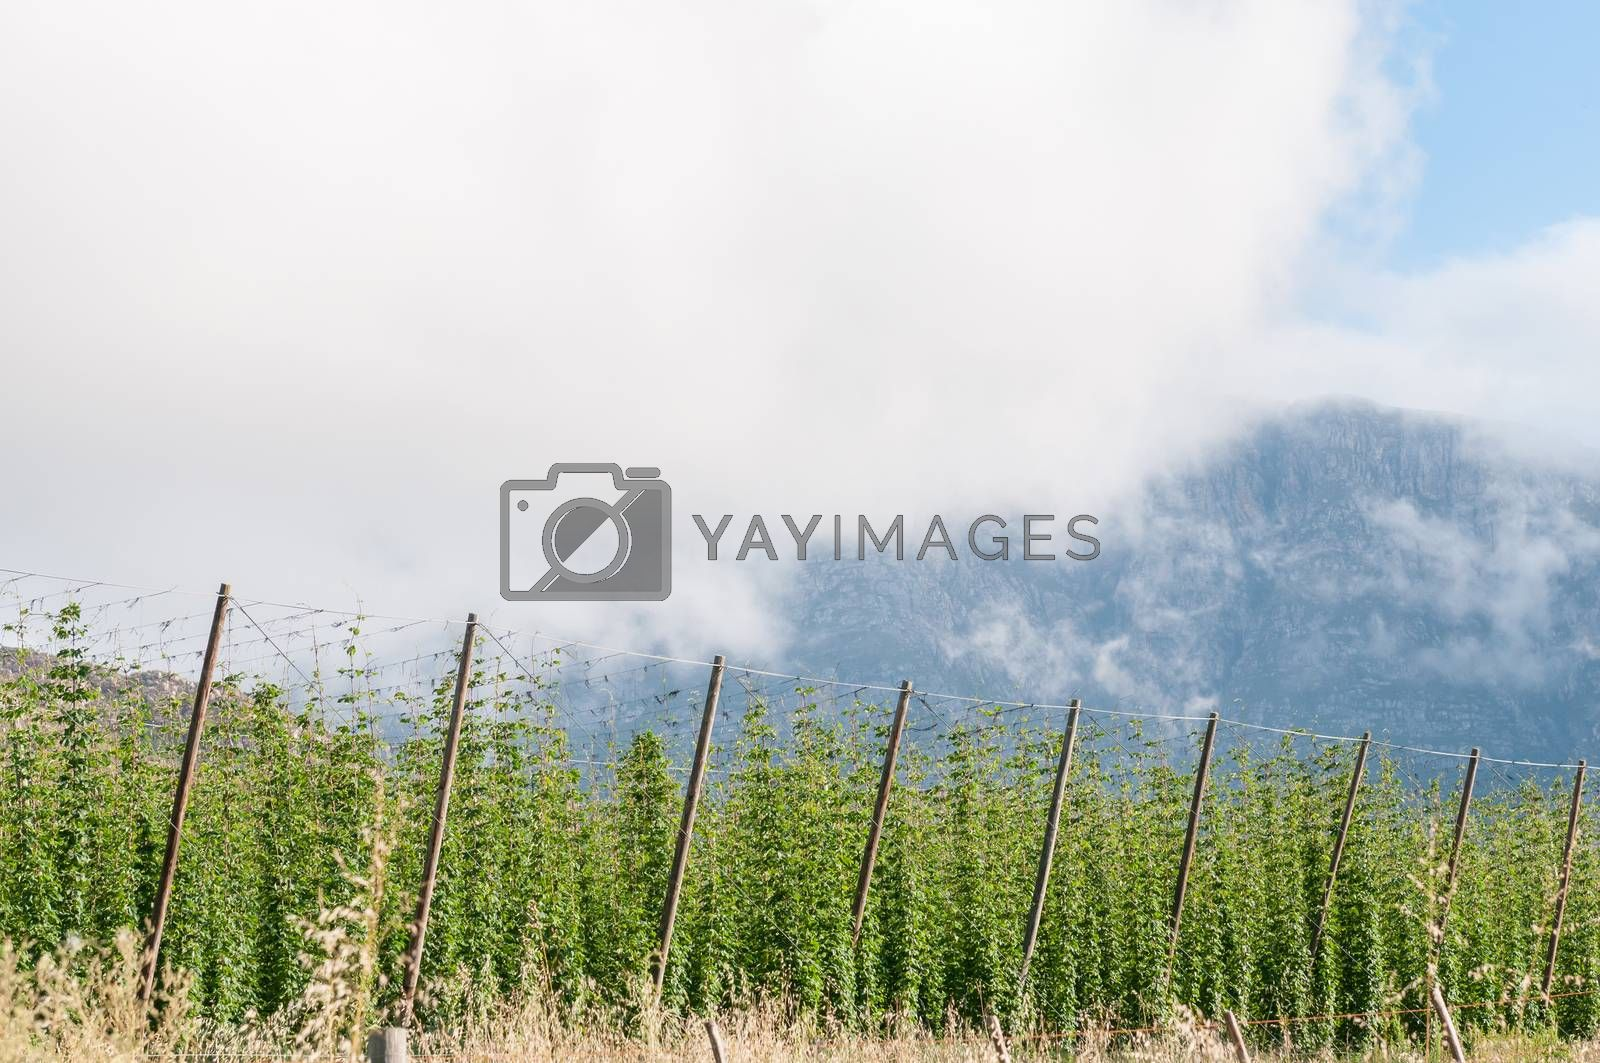 Royalty free image of Hops growing near Herold, a small village at the top of the Mont by dpreezg